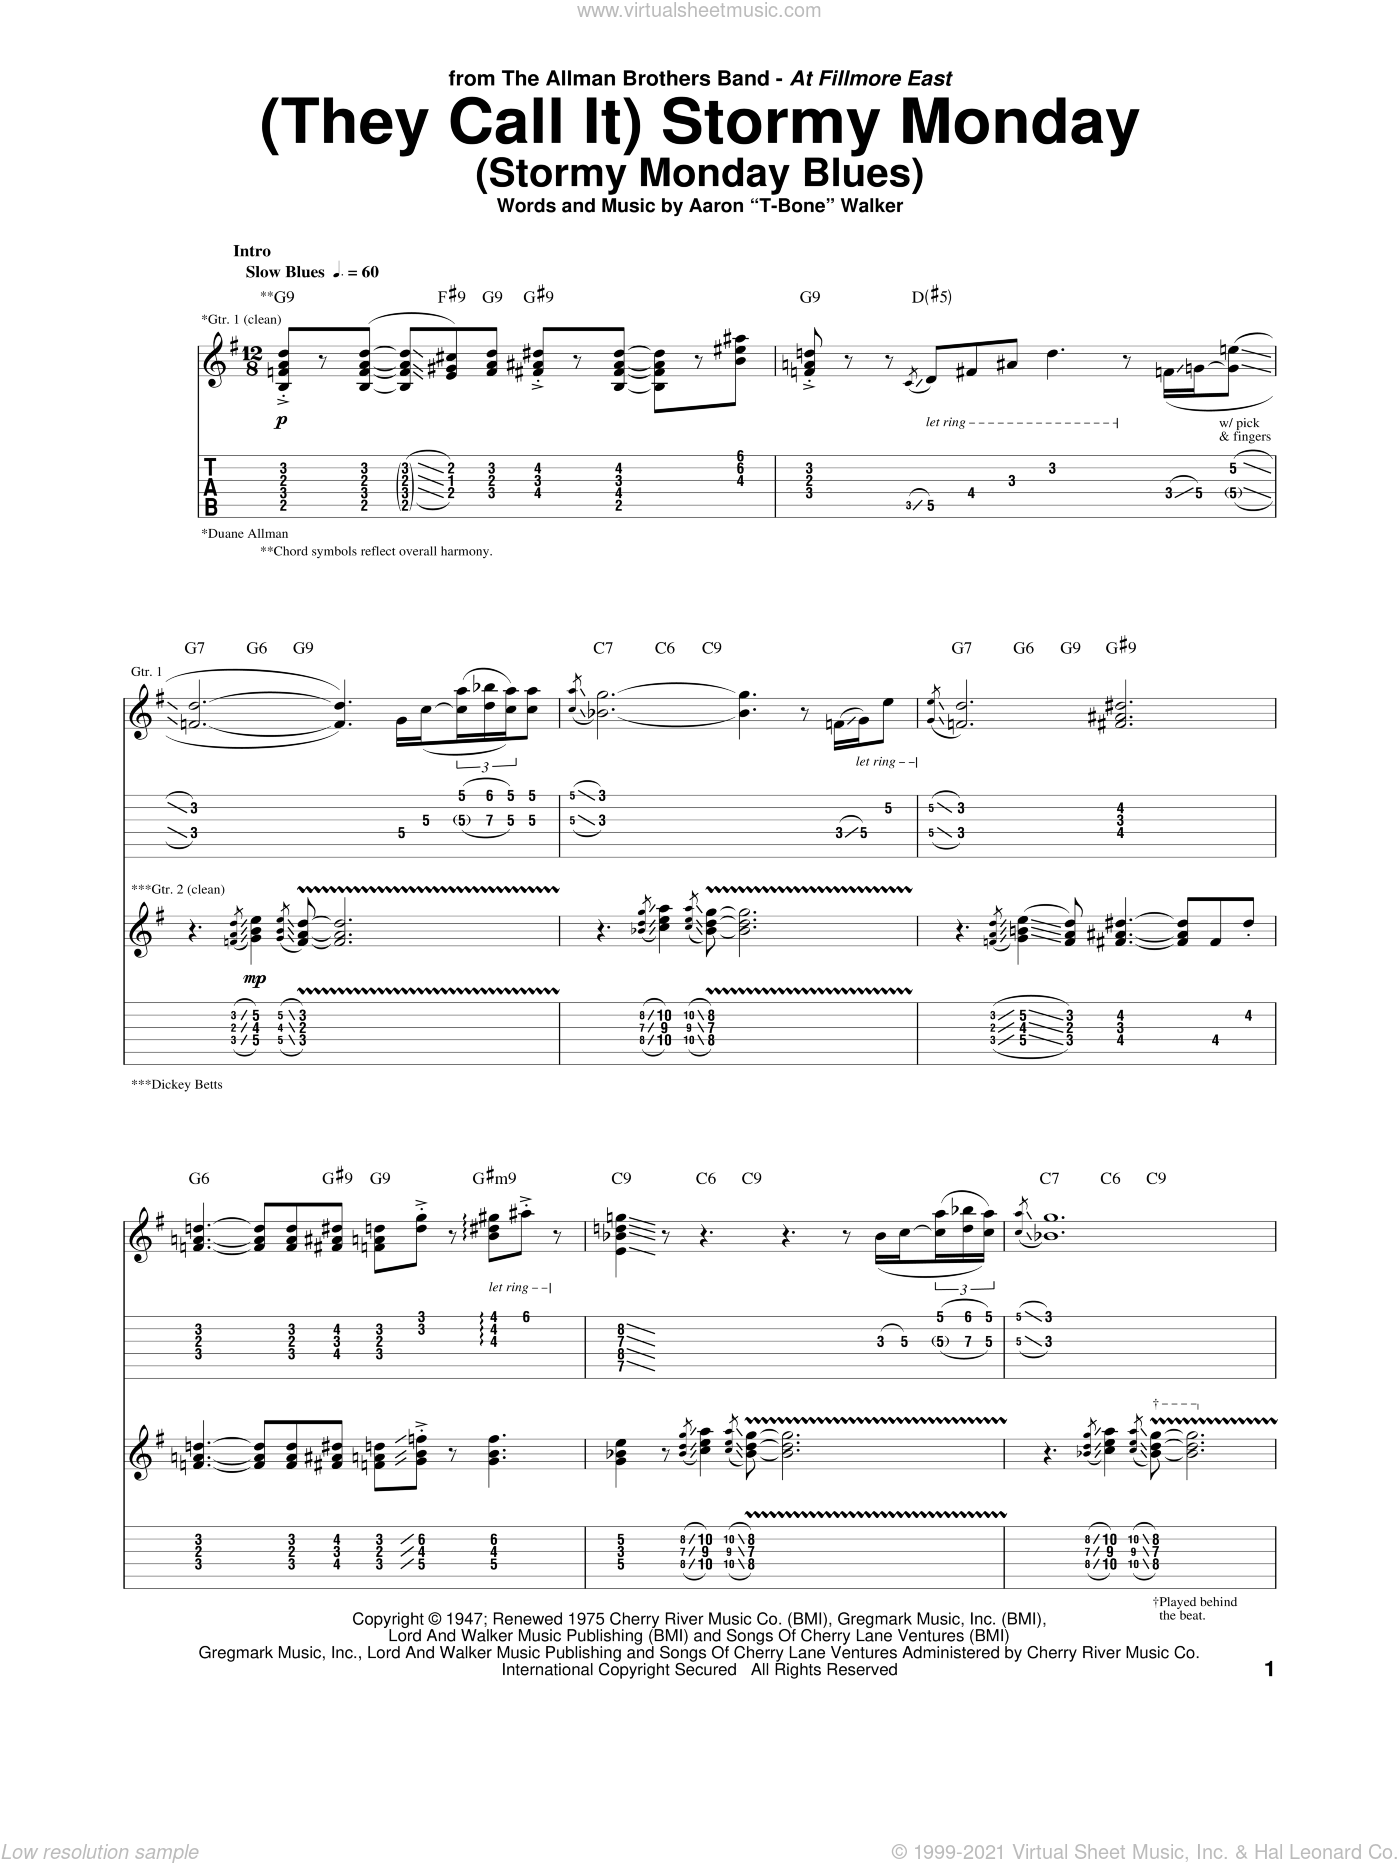 (They Call It) Stormy Monday (Stormy Monday Blues) sheet music for guitar (tablature) by Allman Brothers Band, The Allman Brothers Band and Aaron 'T-Bone' Walker, intermediate skill level